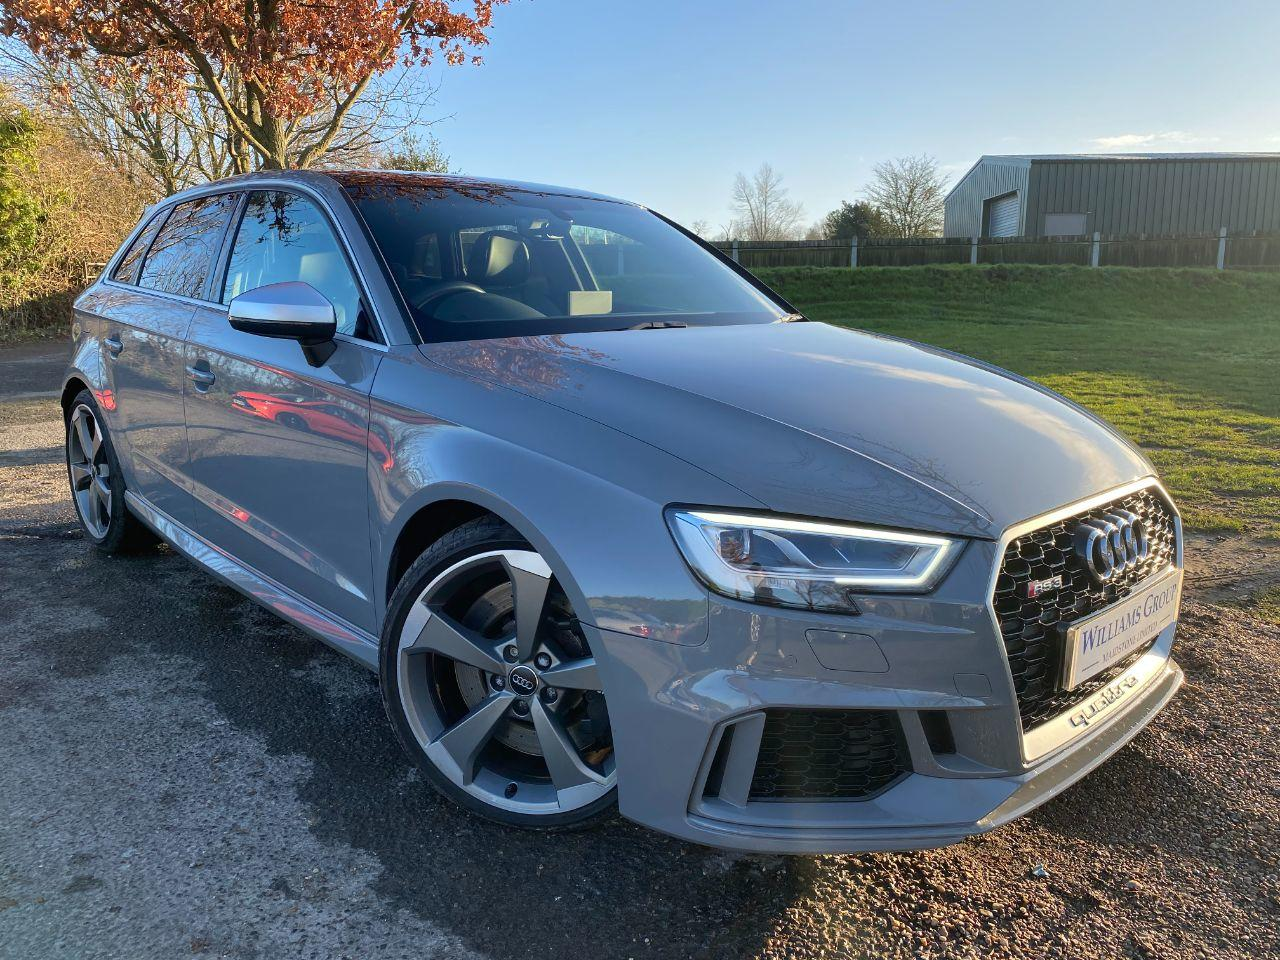 Audi RS3 2.5 TFSI RS 3 Quattro 5dr S Tronic (Pan Roof! 19in Rotors! +++) Hatchback Petrol Nardo Grey